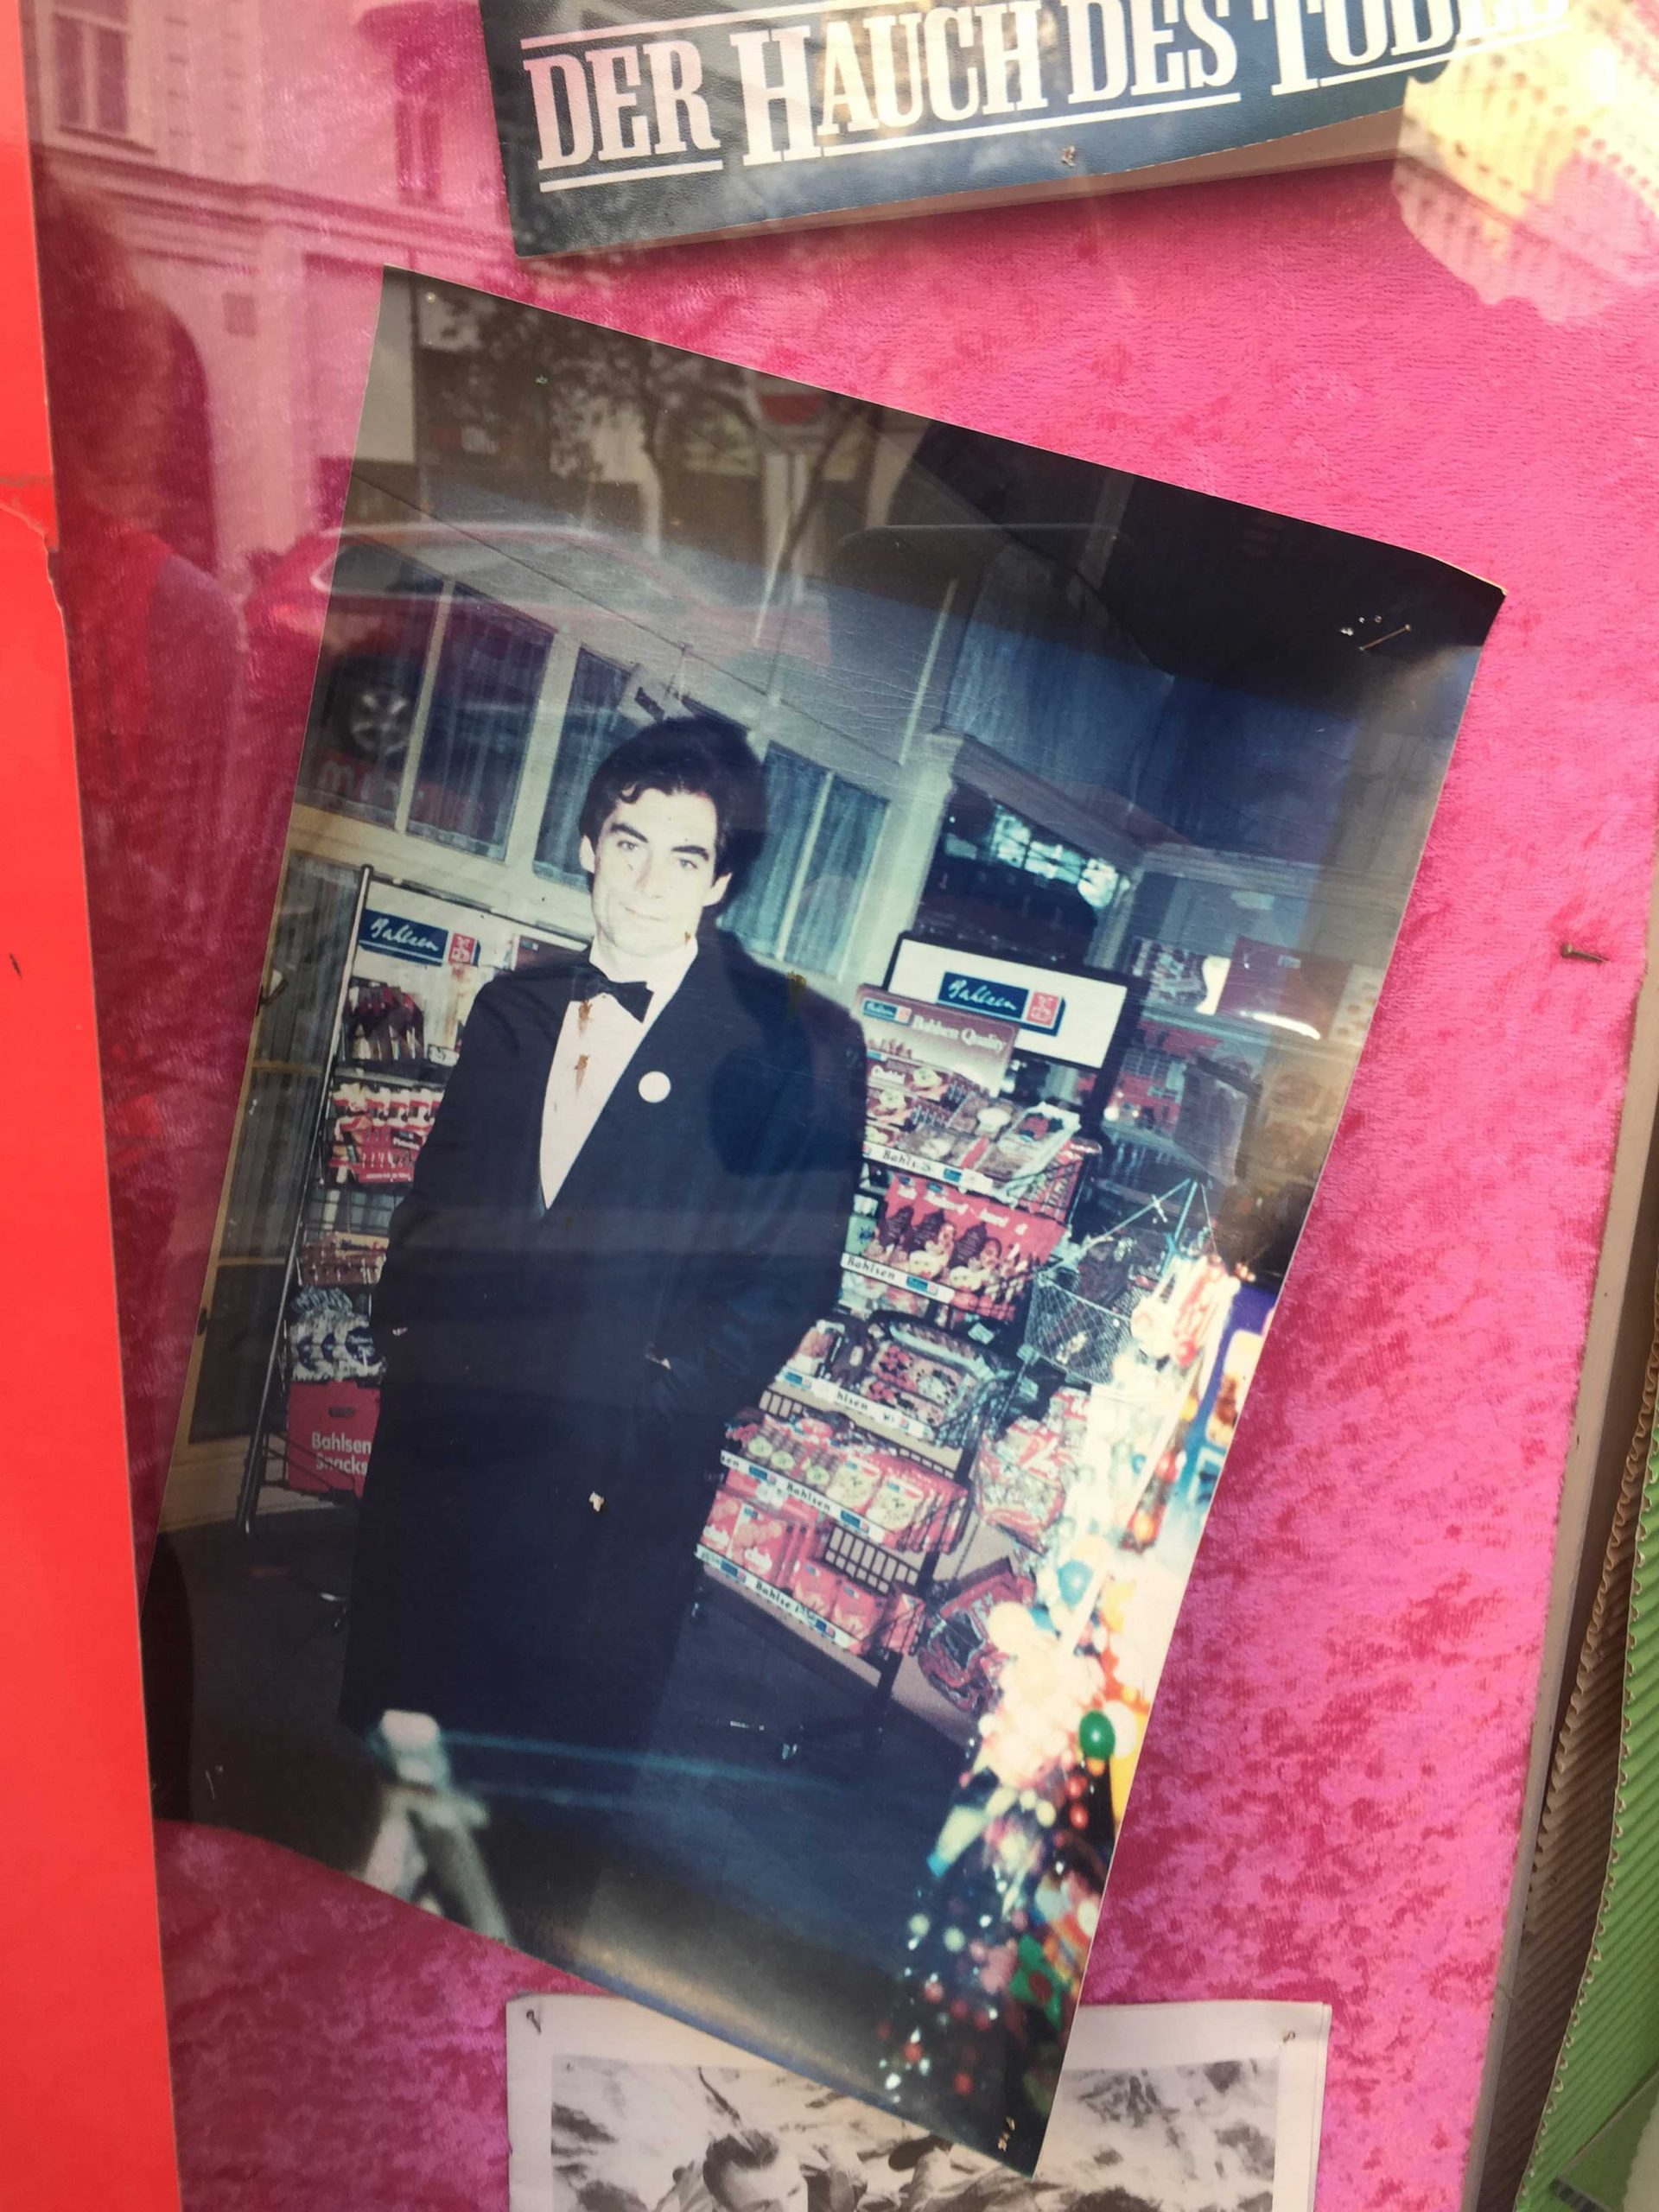 Old photo of timothy dalton in shop window Vienna The Living Daylights